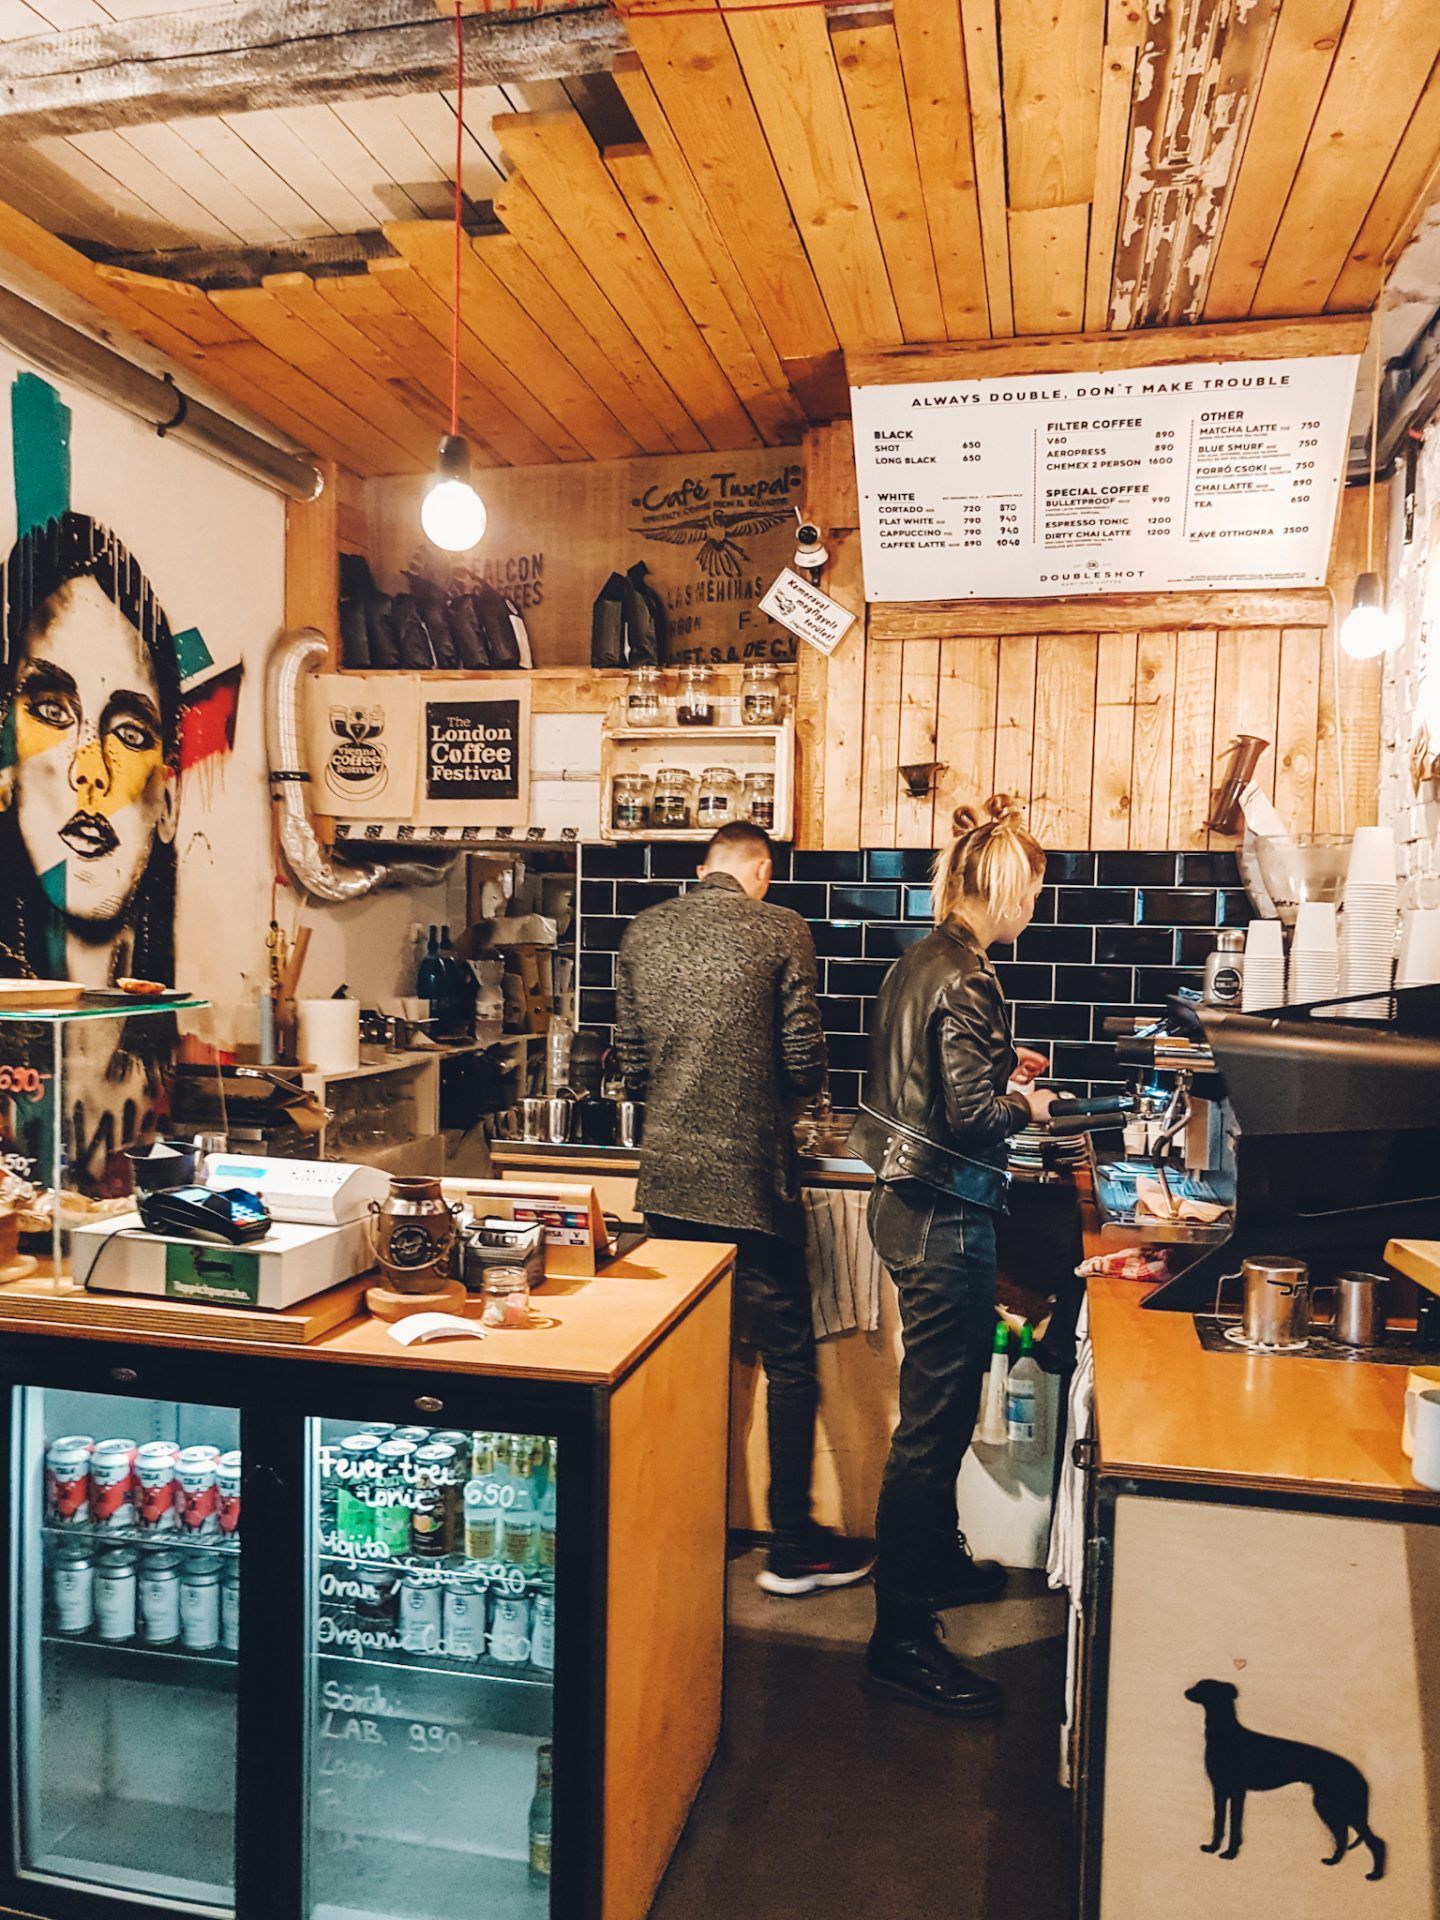 Partisan Coffeeshop has the best coffee in Budapest